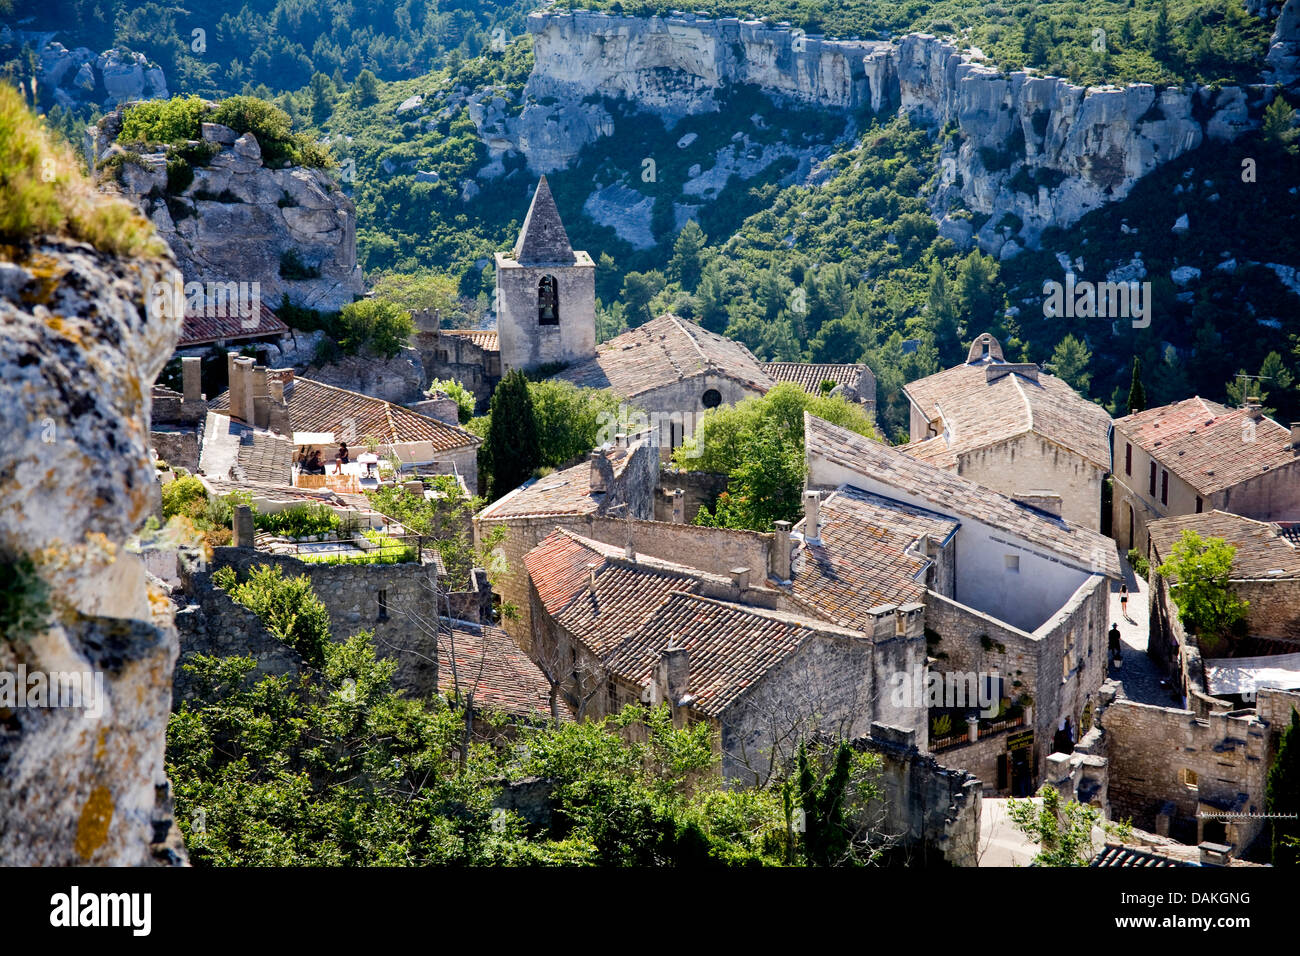 view to historical village centre, France, Provence, Les Baux-de-Provence - Stock Image